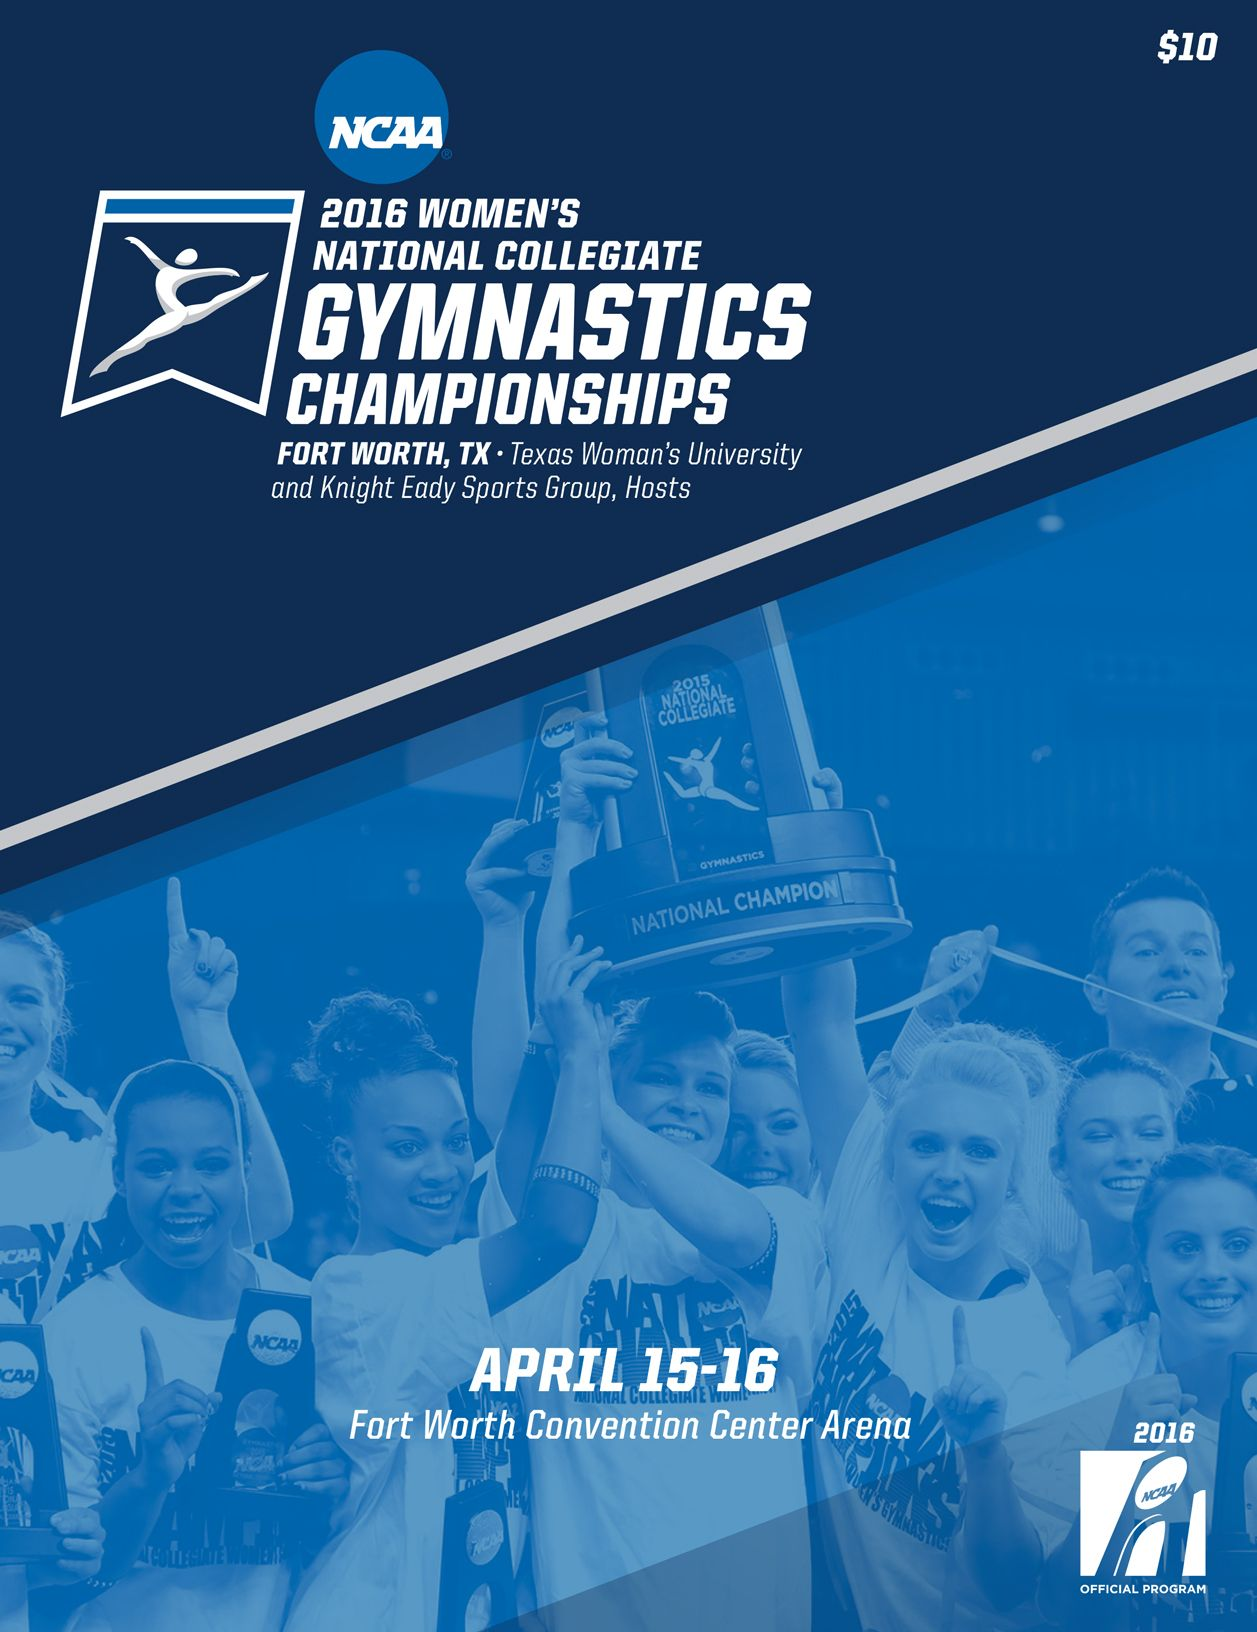 The official 2016 NCAA Women's National Collegiate